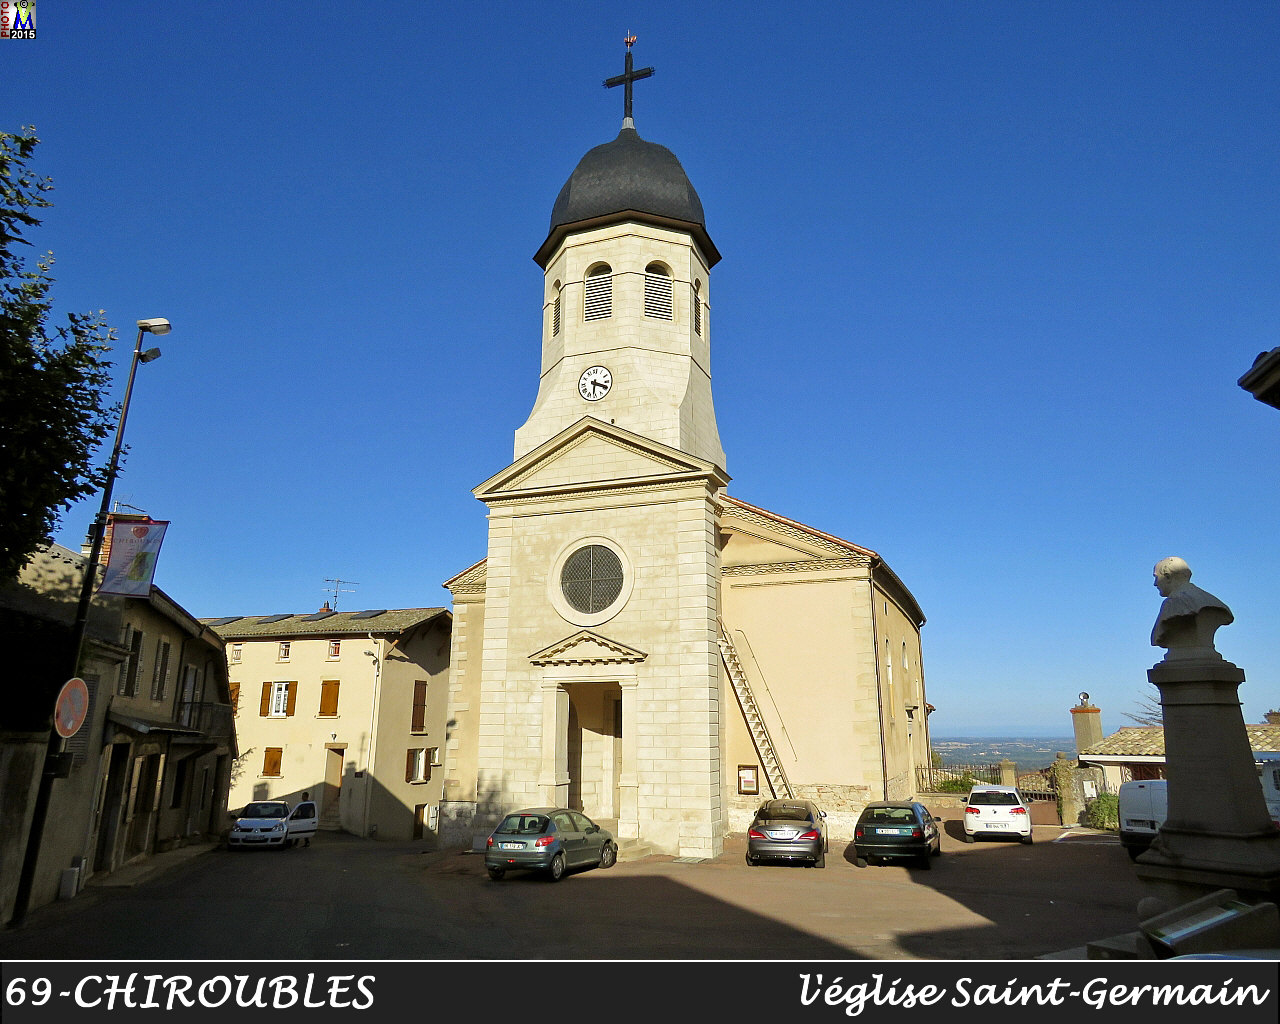 69CHIROUBLES_eglise_100.jpg